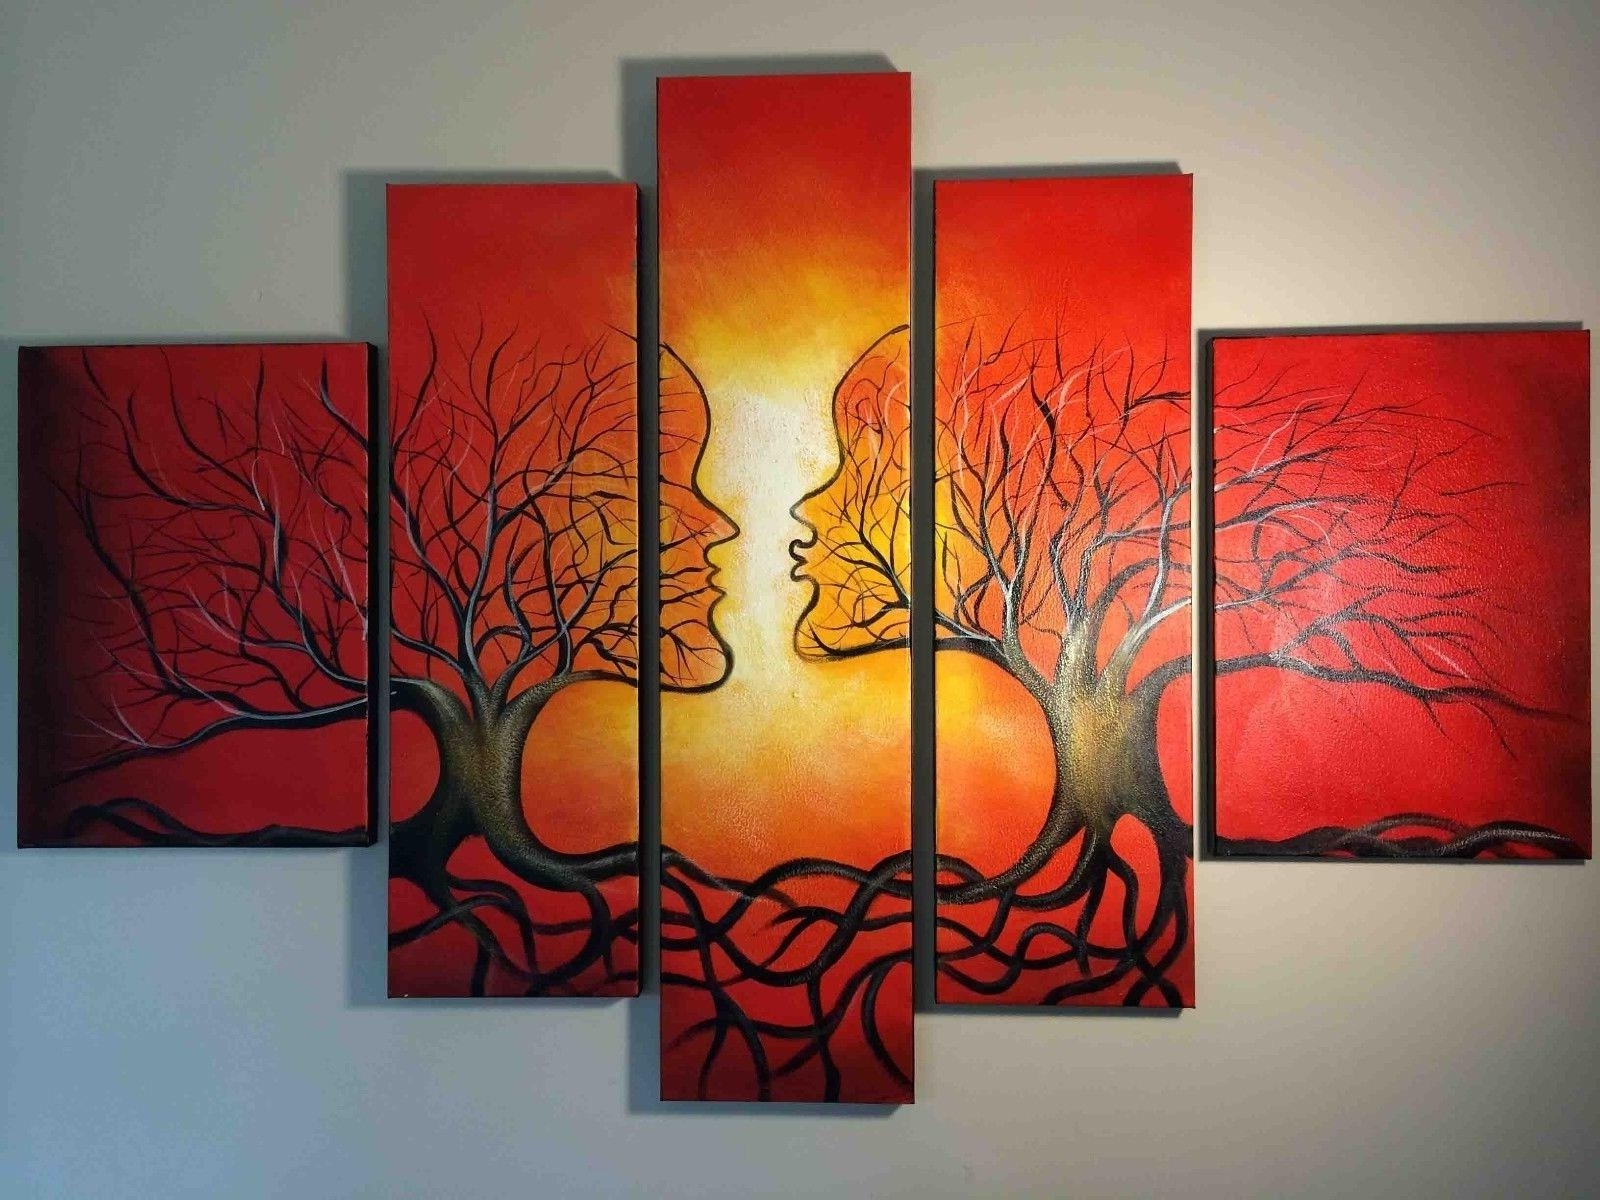 Latest Wall Art Designs: Abstract Wall Art Red Abstract Oil Painting Throughout Abstract Orange Wall Art (View 11 of 15)